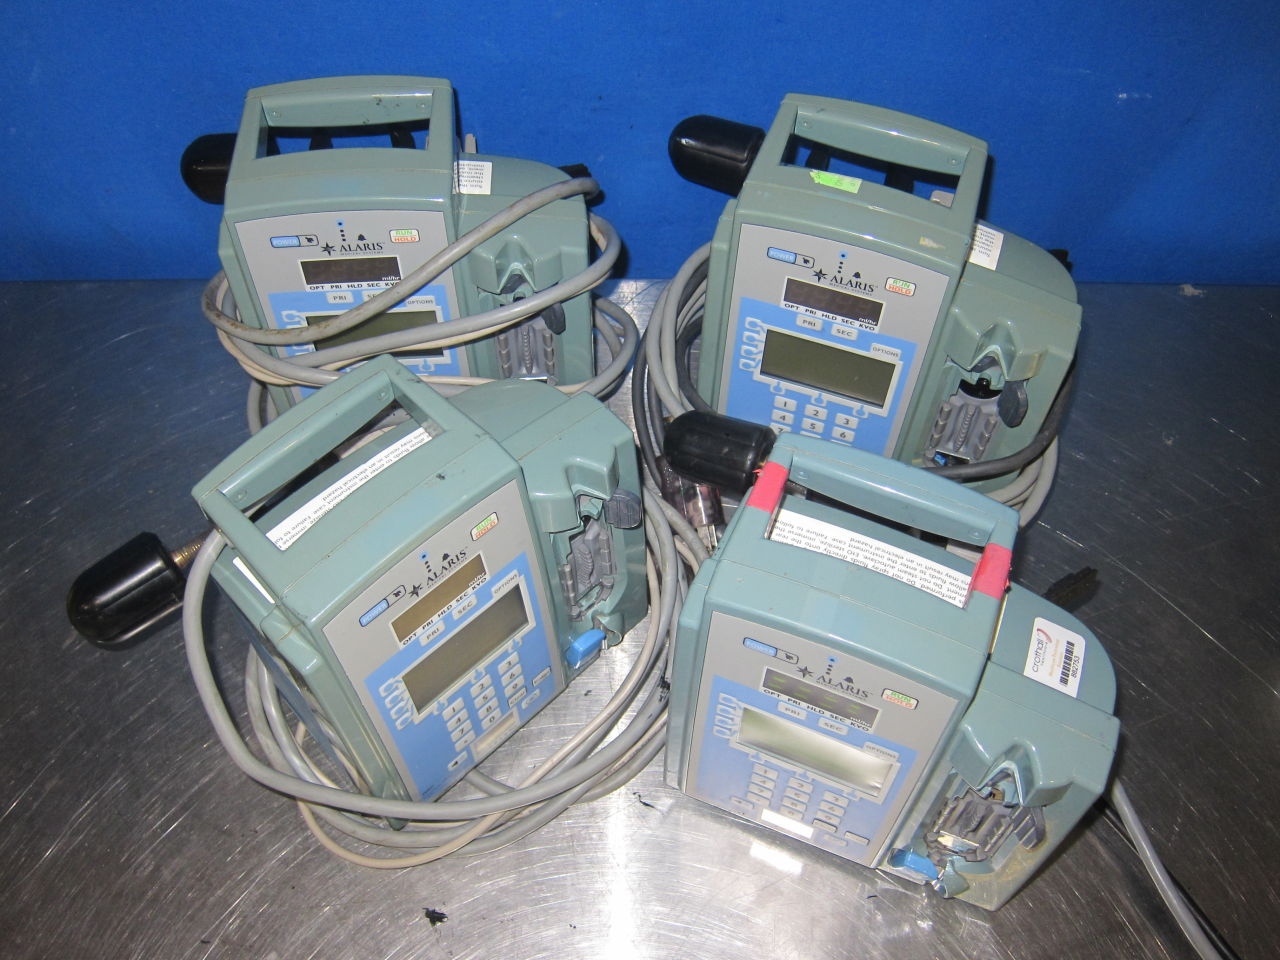 ALARIS 7130  - Lot of 4 Pump IV Infusion